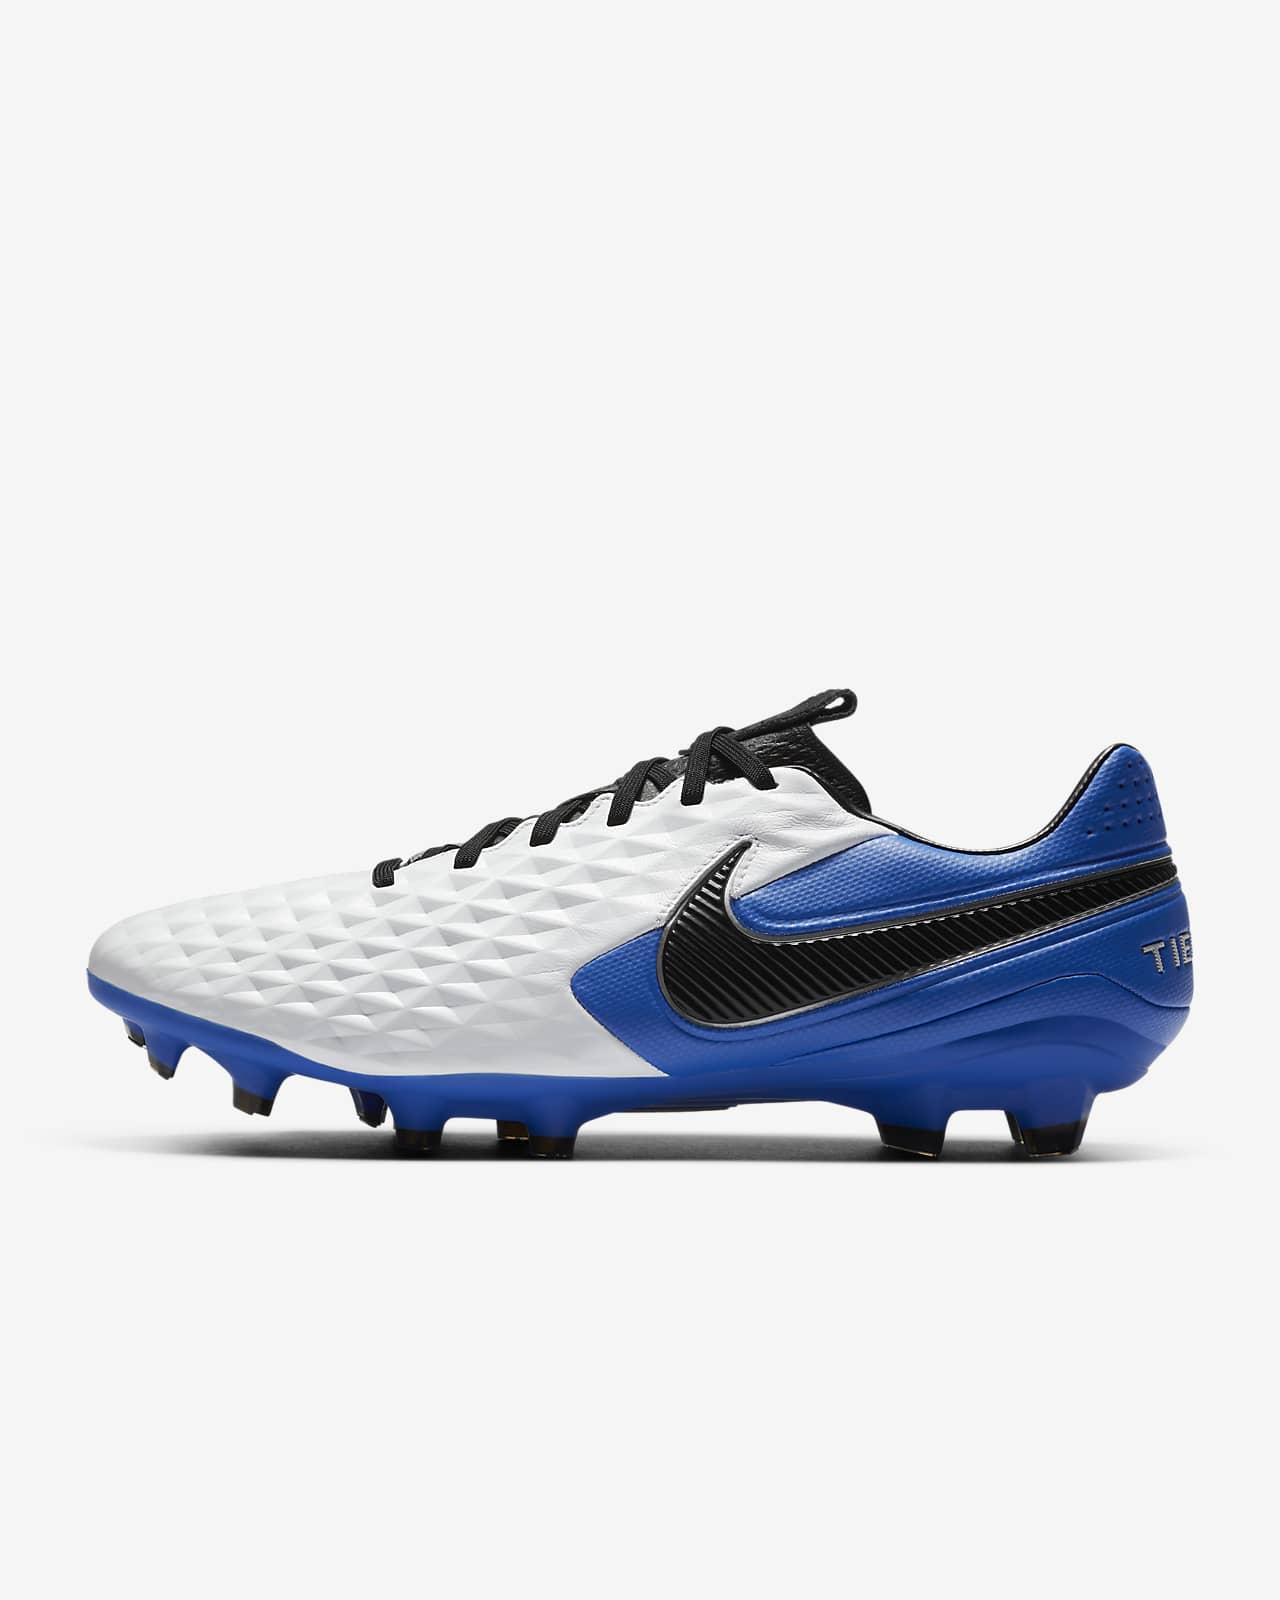 mythology Make it heavy cry  Nike Tiempo Legend 8 Pro FG Firm-Ground Football Boot. Nike AU